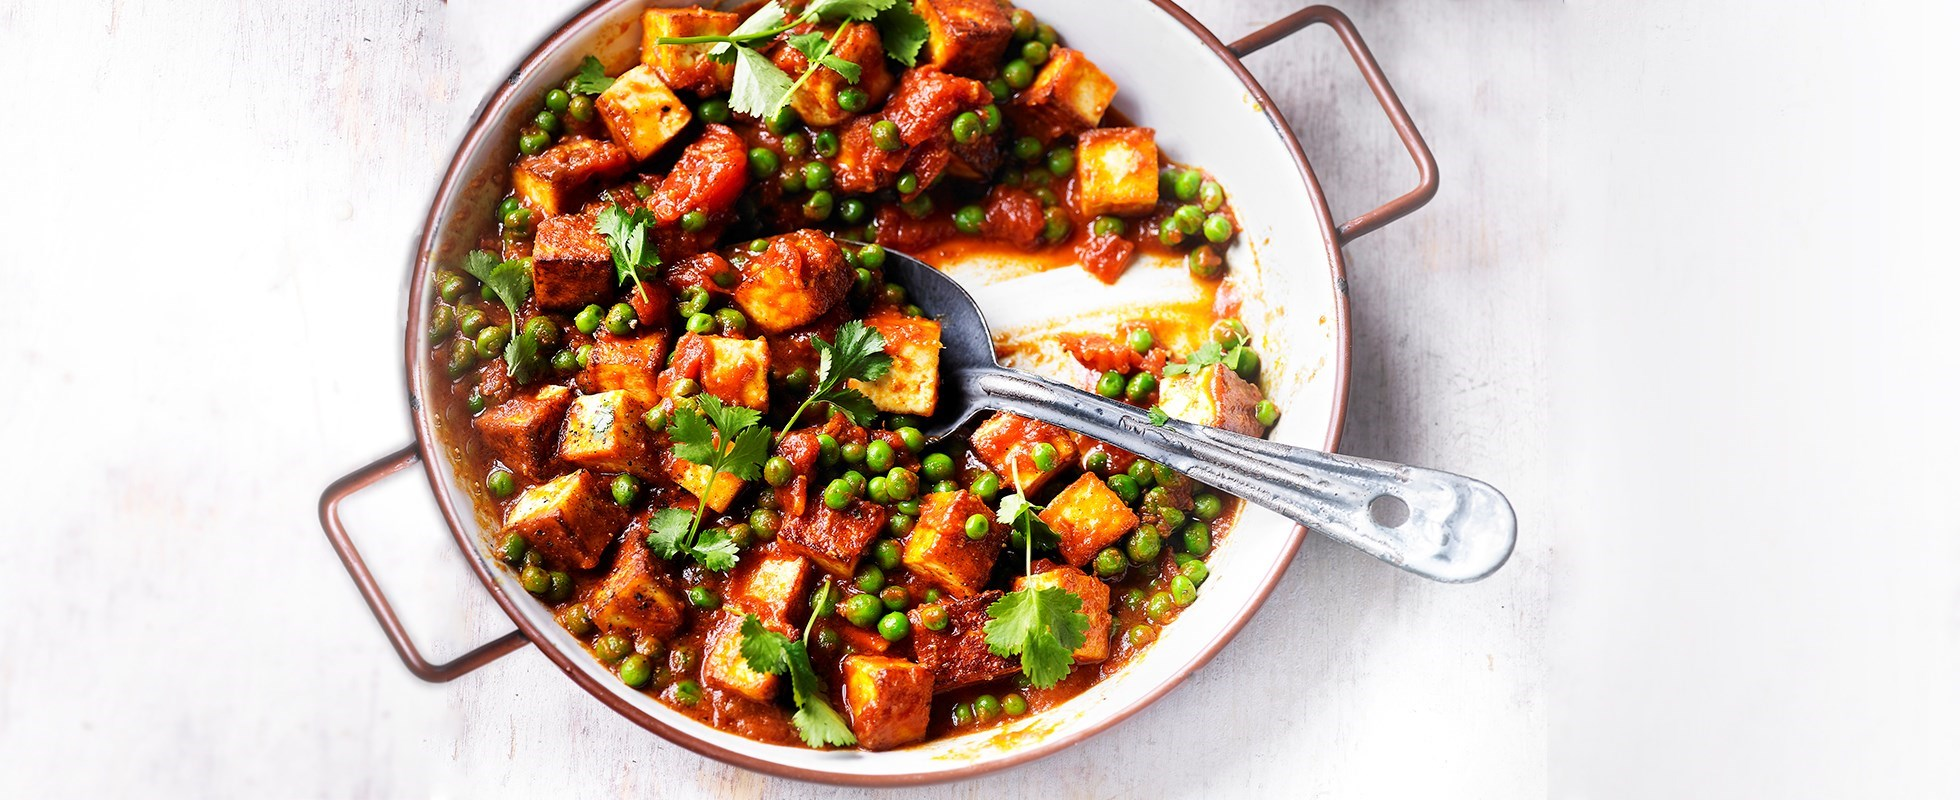 24 best vegetarian curry recipes | easy vegetable curries - olive ...